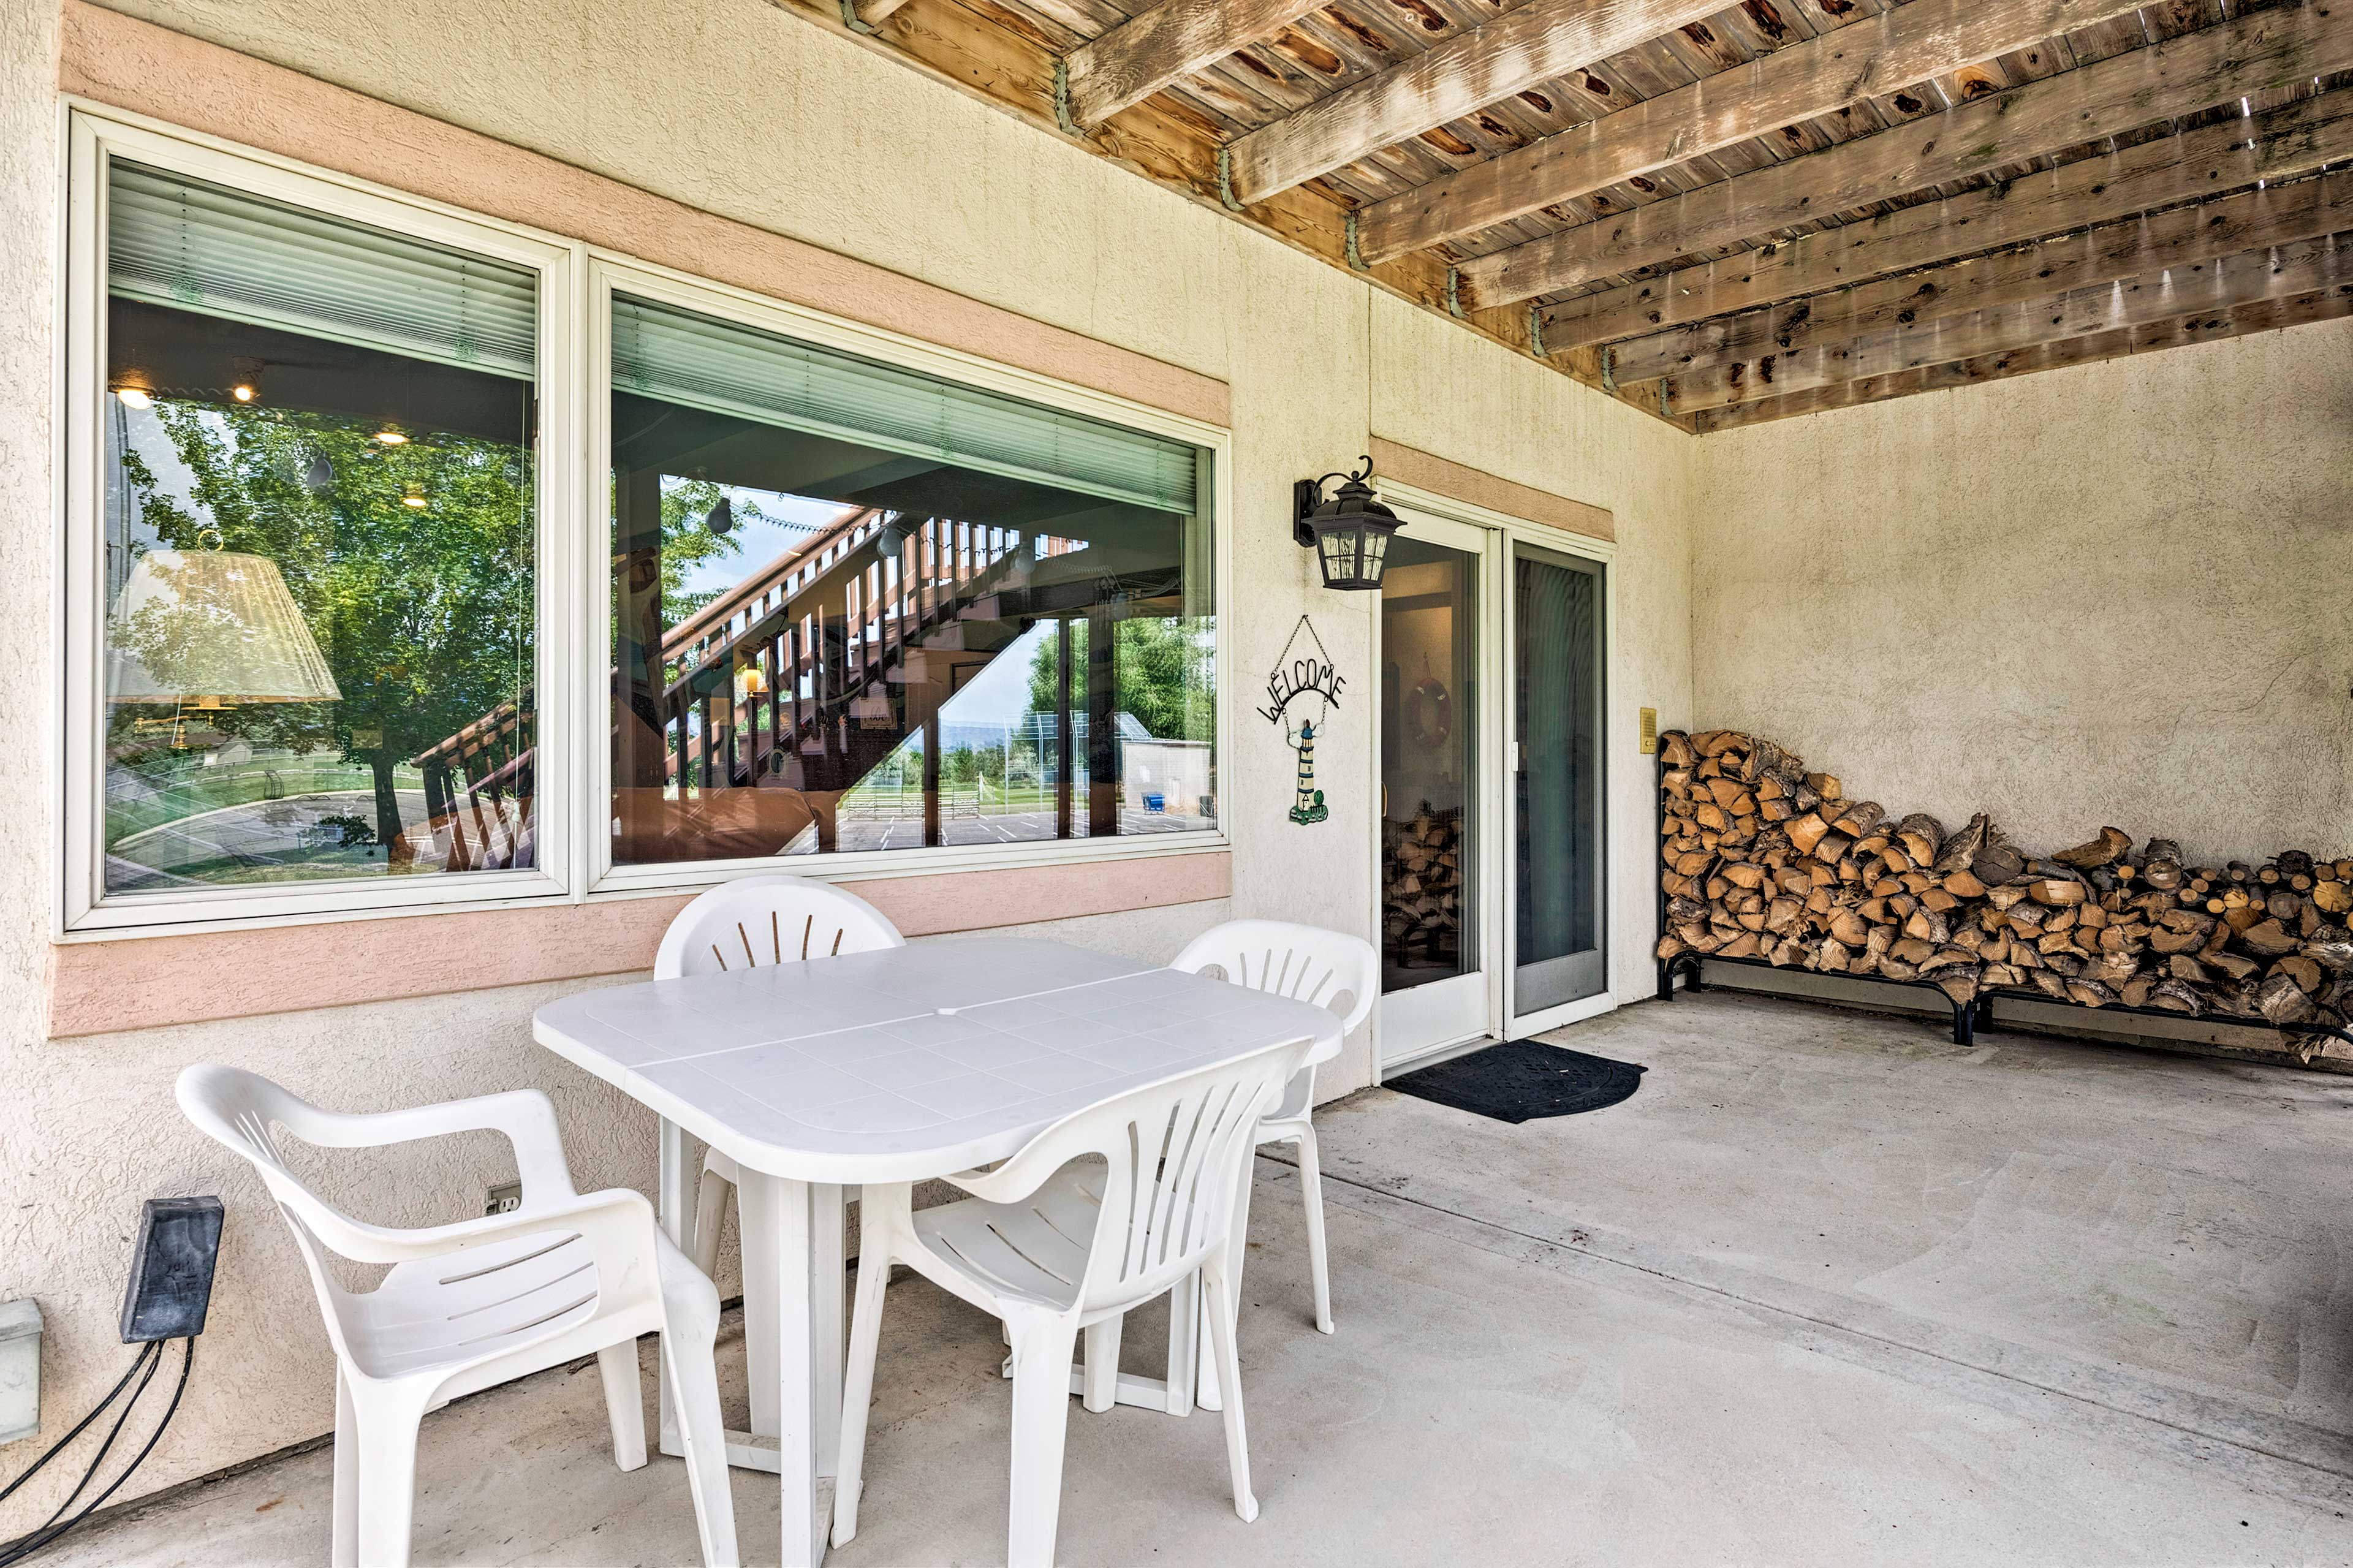 Fire up the grill for a savory afternoon barbecue at the vacation rental.